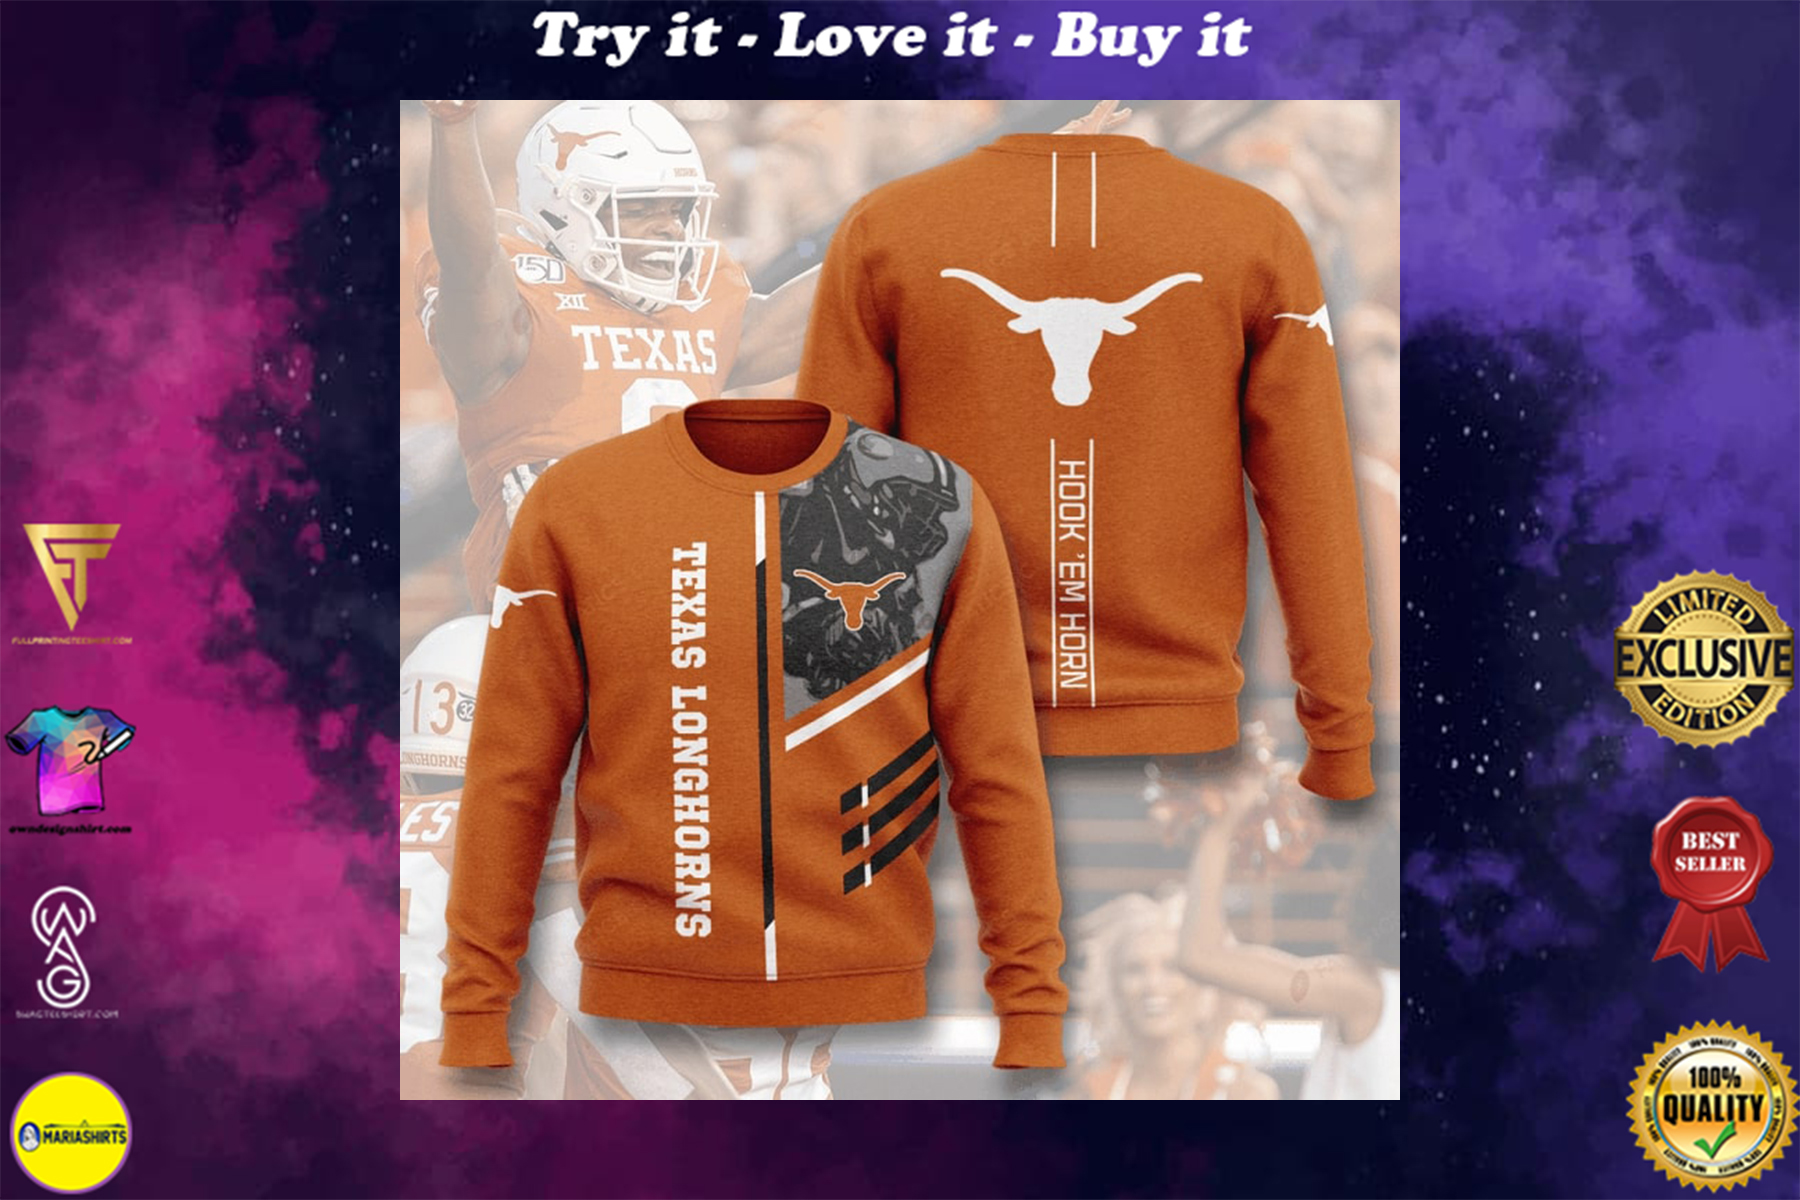 [special edition] texas longhorns football hook em horn full printing ugly sweater - maria